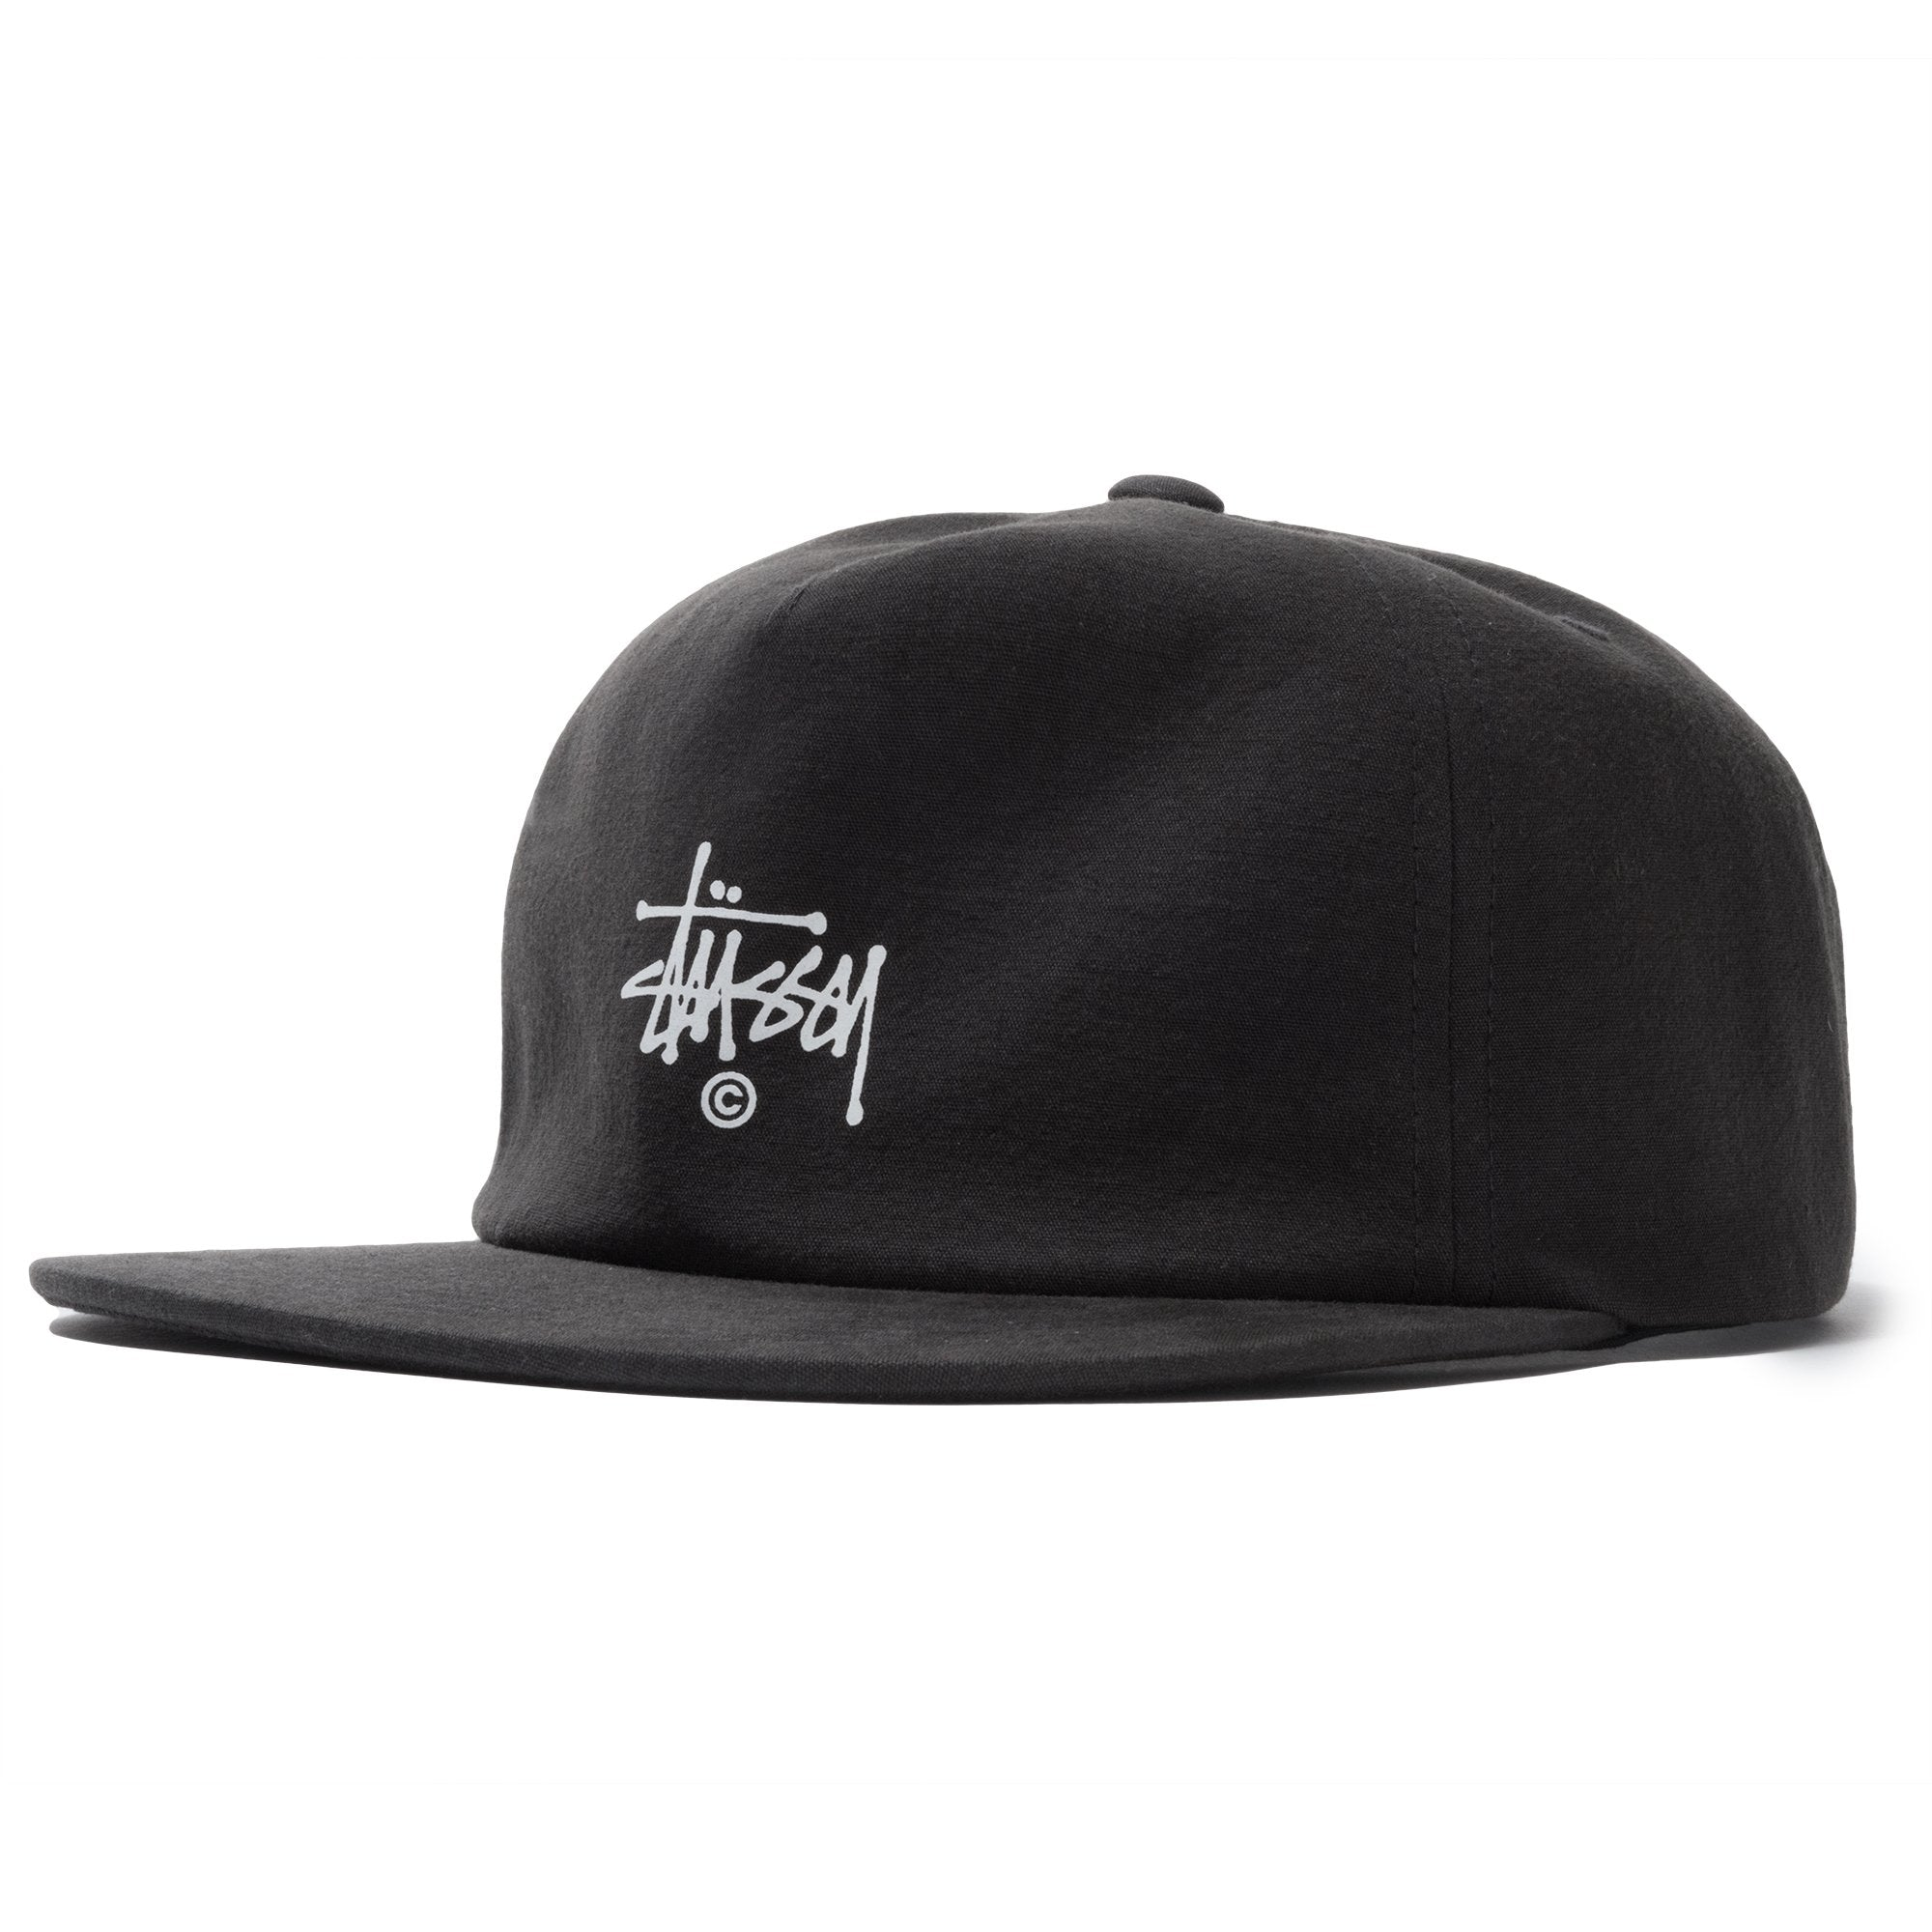 c70797593 Stussy Hats, Bucket Hats, Caps and Beanies for Men and Women ...